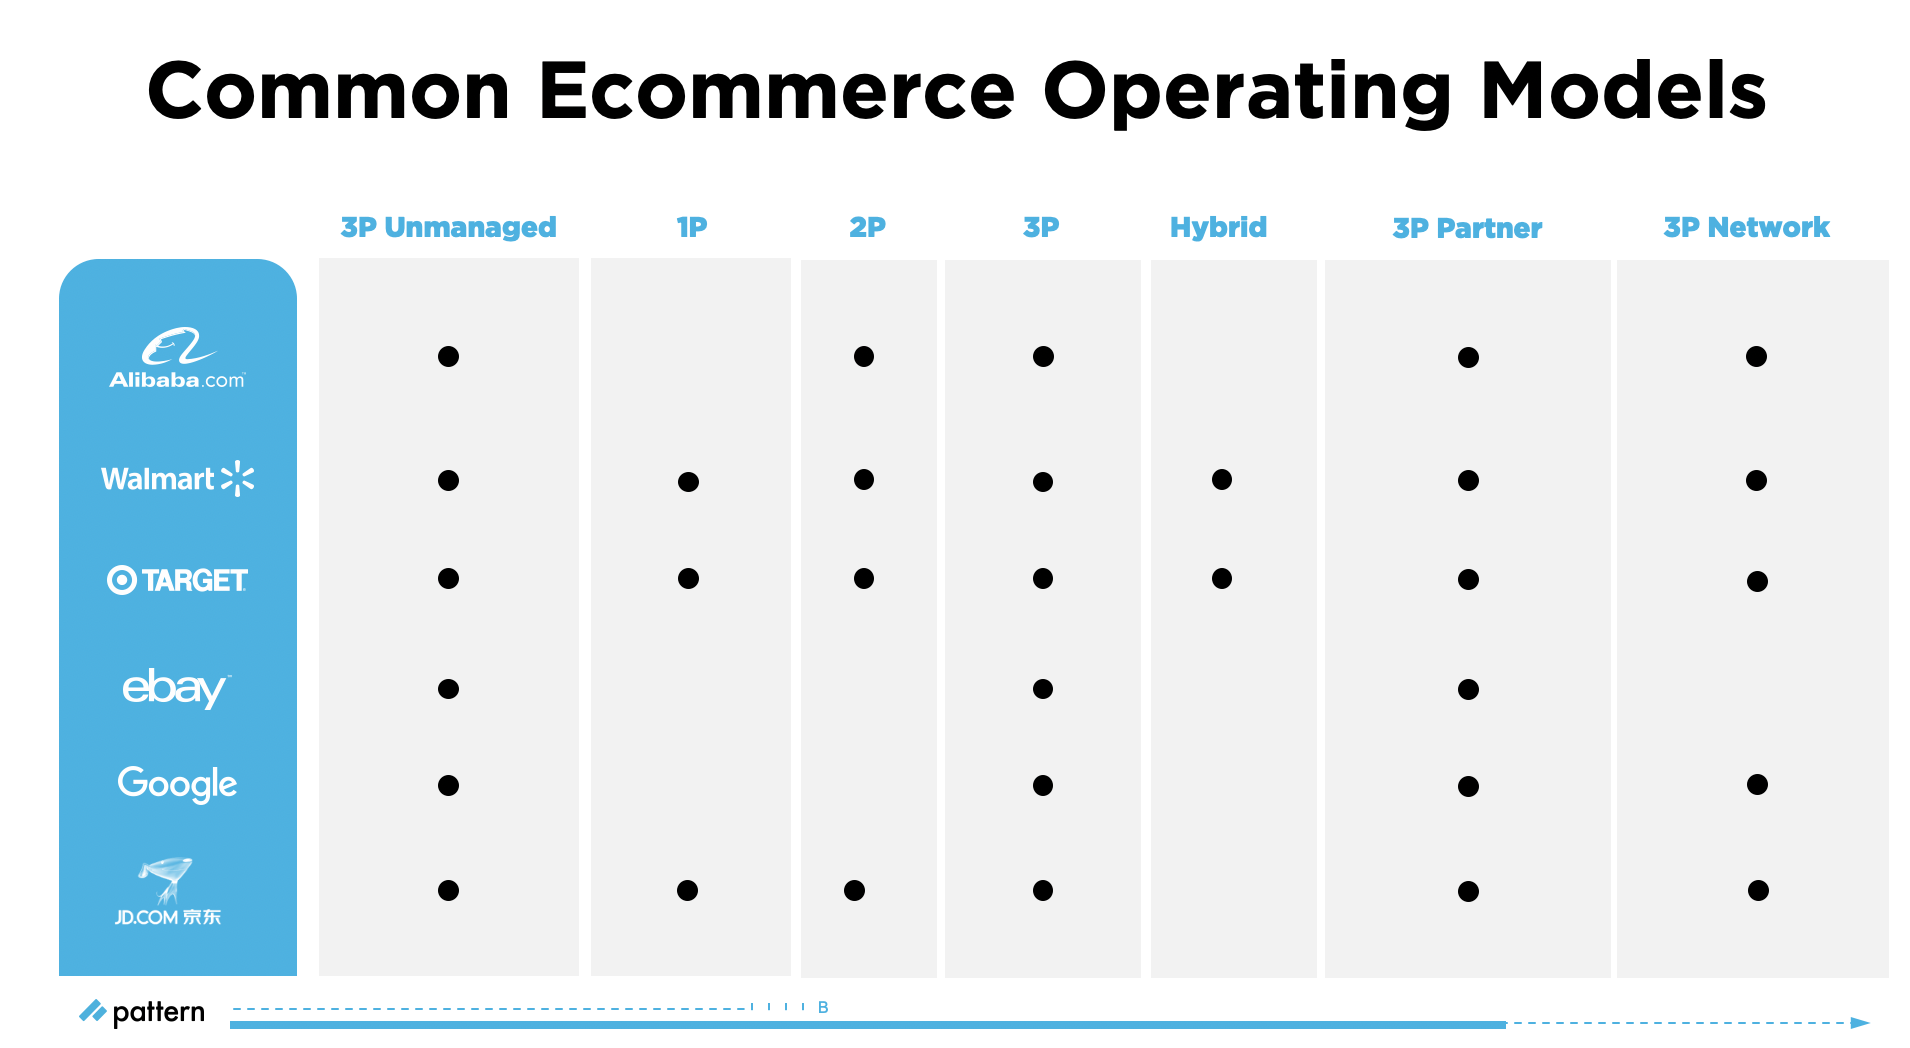 Common Ecommerce Selling Models Available on Marketplaces | Pattern